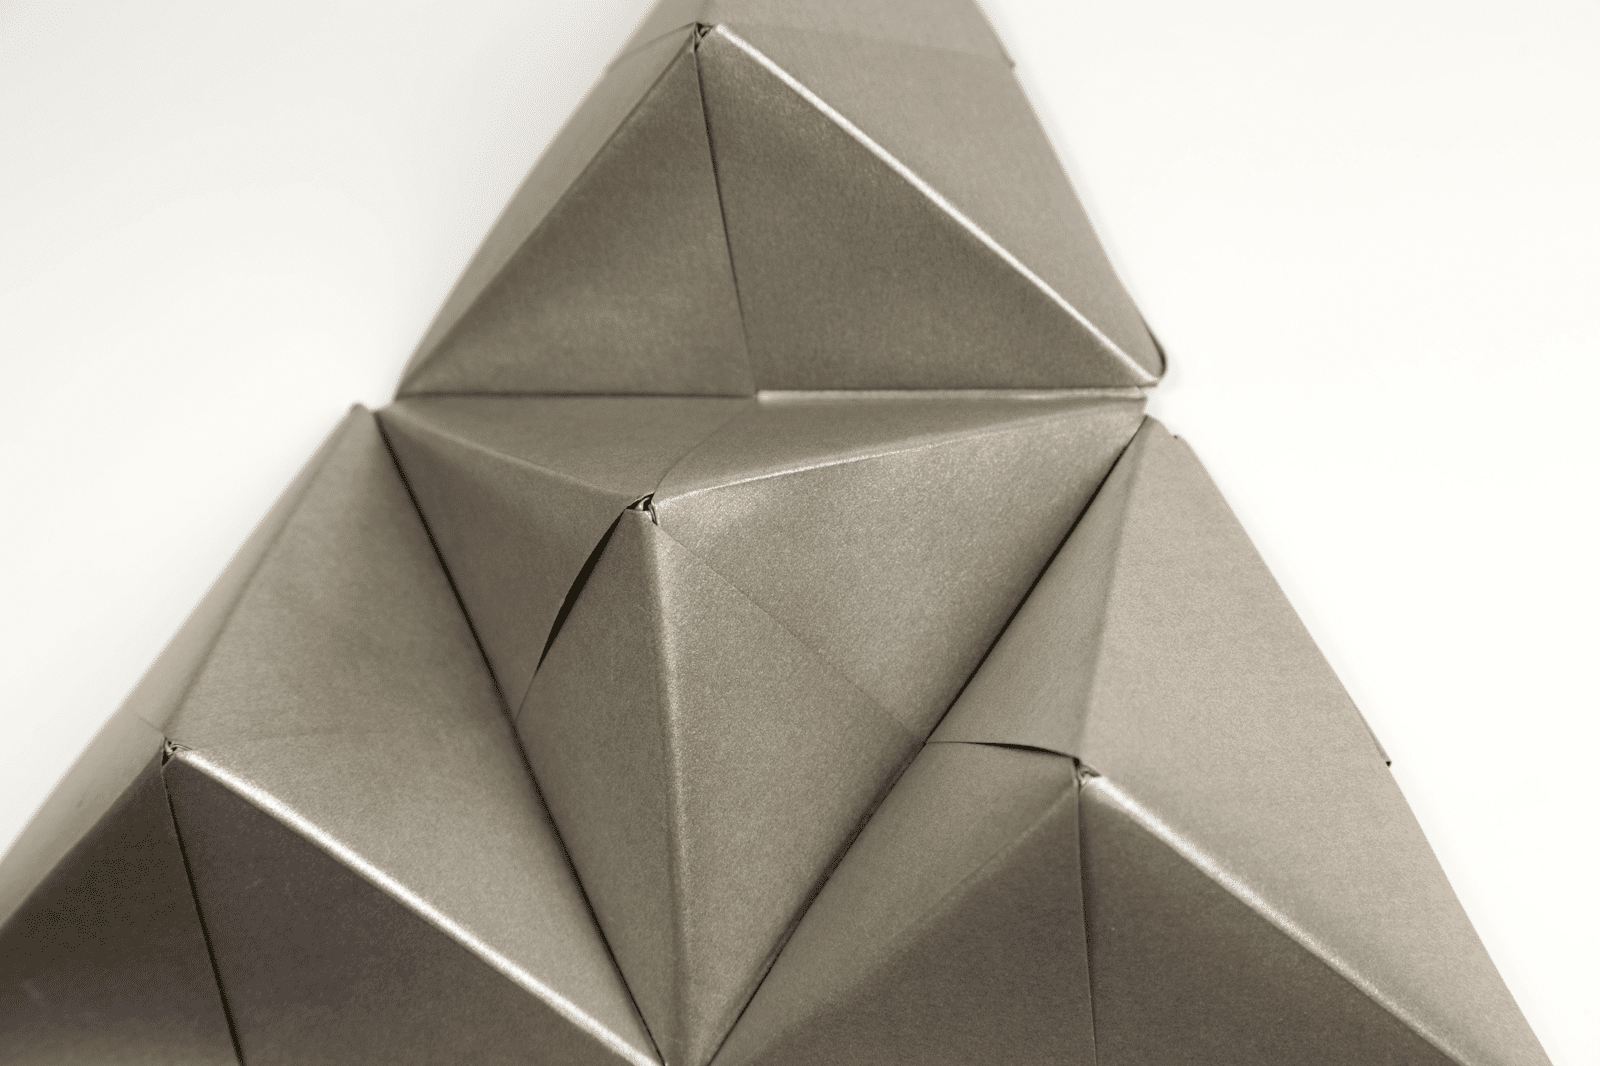 A finished origami Sonobe wall display